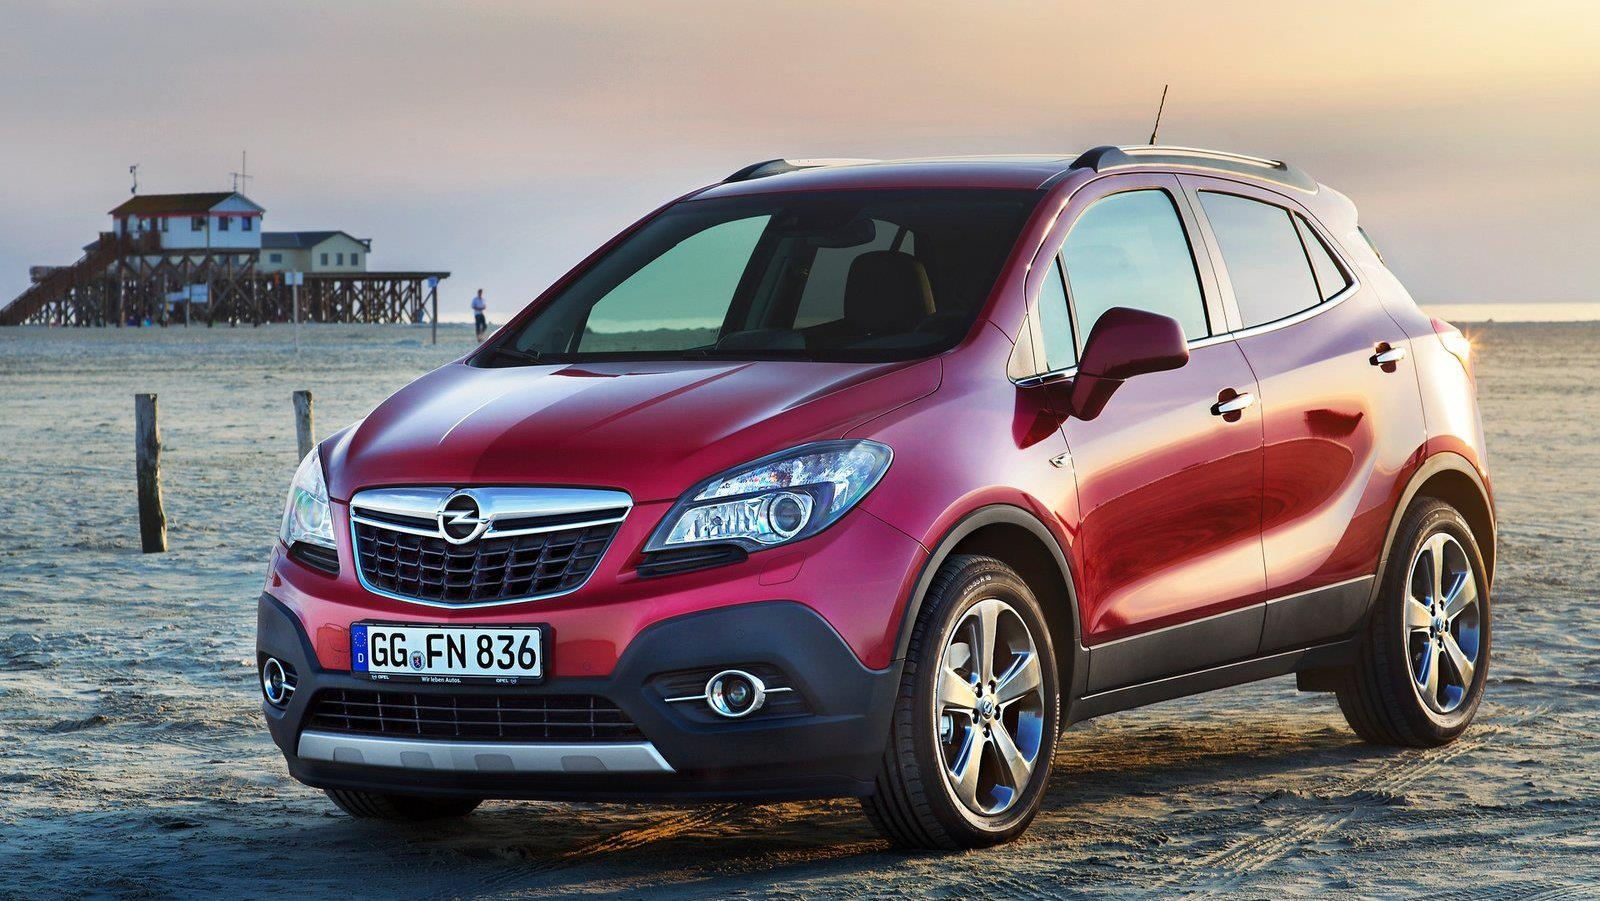 2013 opel mokka 52 bin 250 tl den t rkiye de turkeycarblog. Black Bedroom Furniture Sets. Home Design Ideas